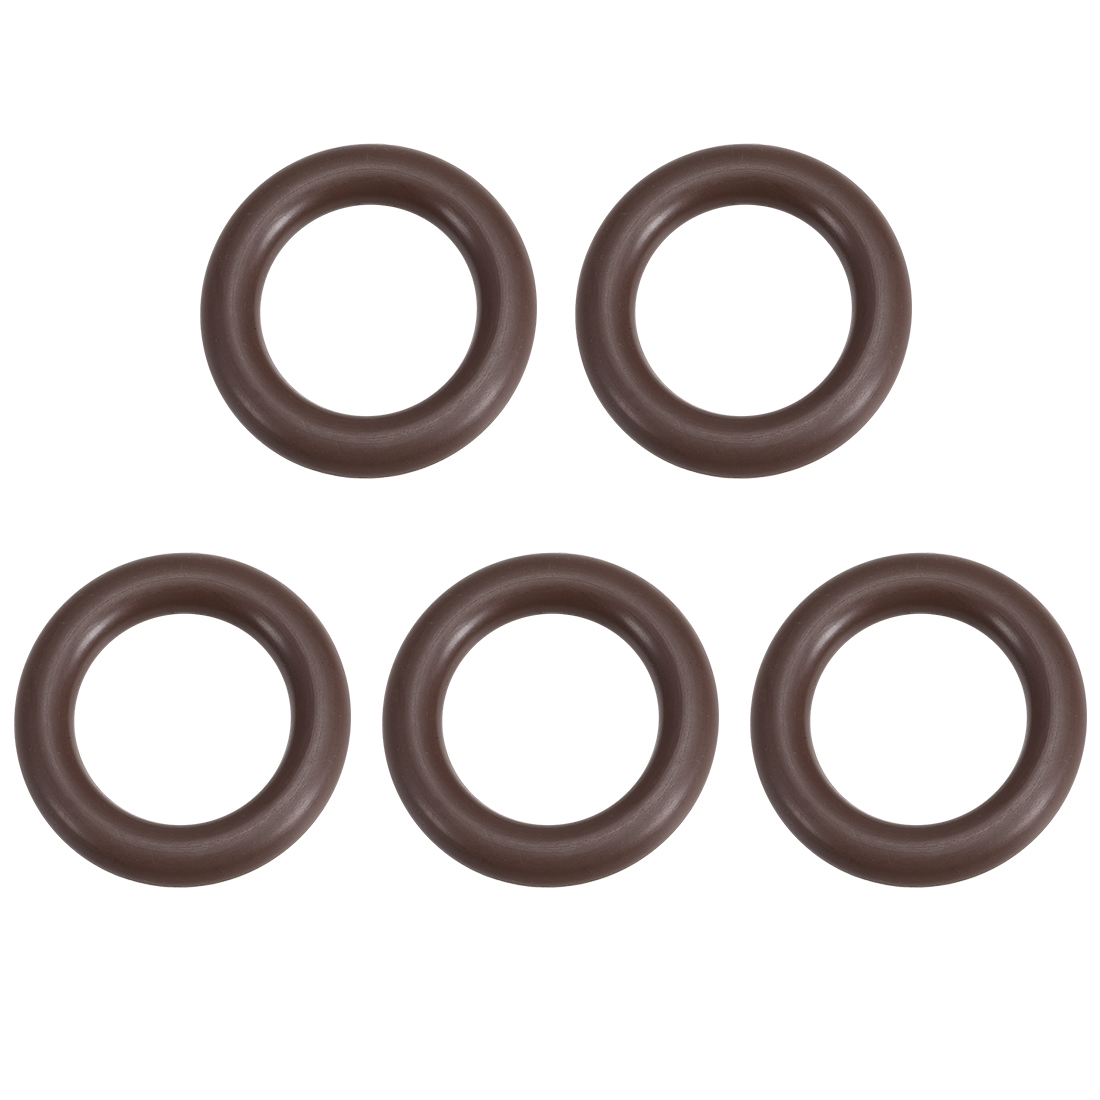 5 Pcs Fluororubber Gasket Sanitary Clamp Washer 29mm x 18.4mm O-Ring